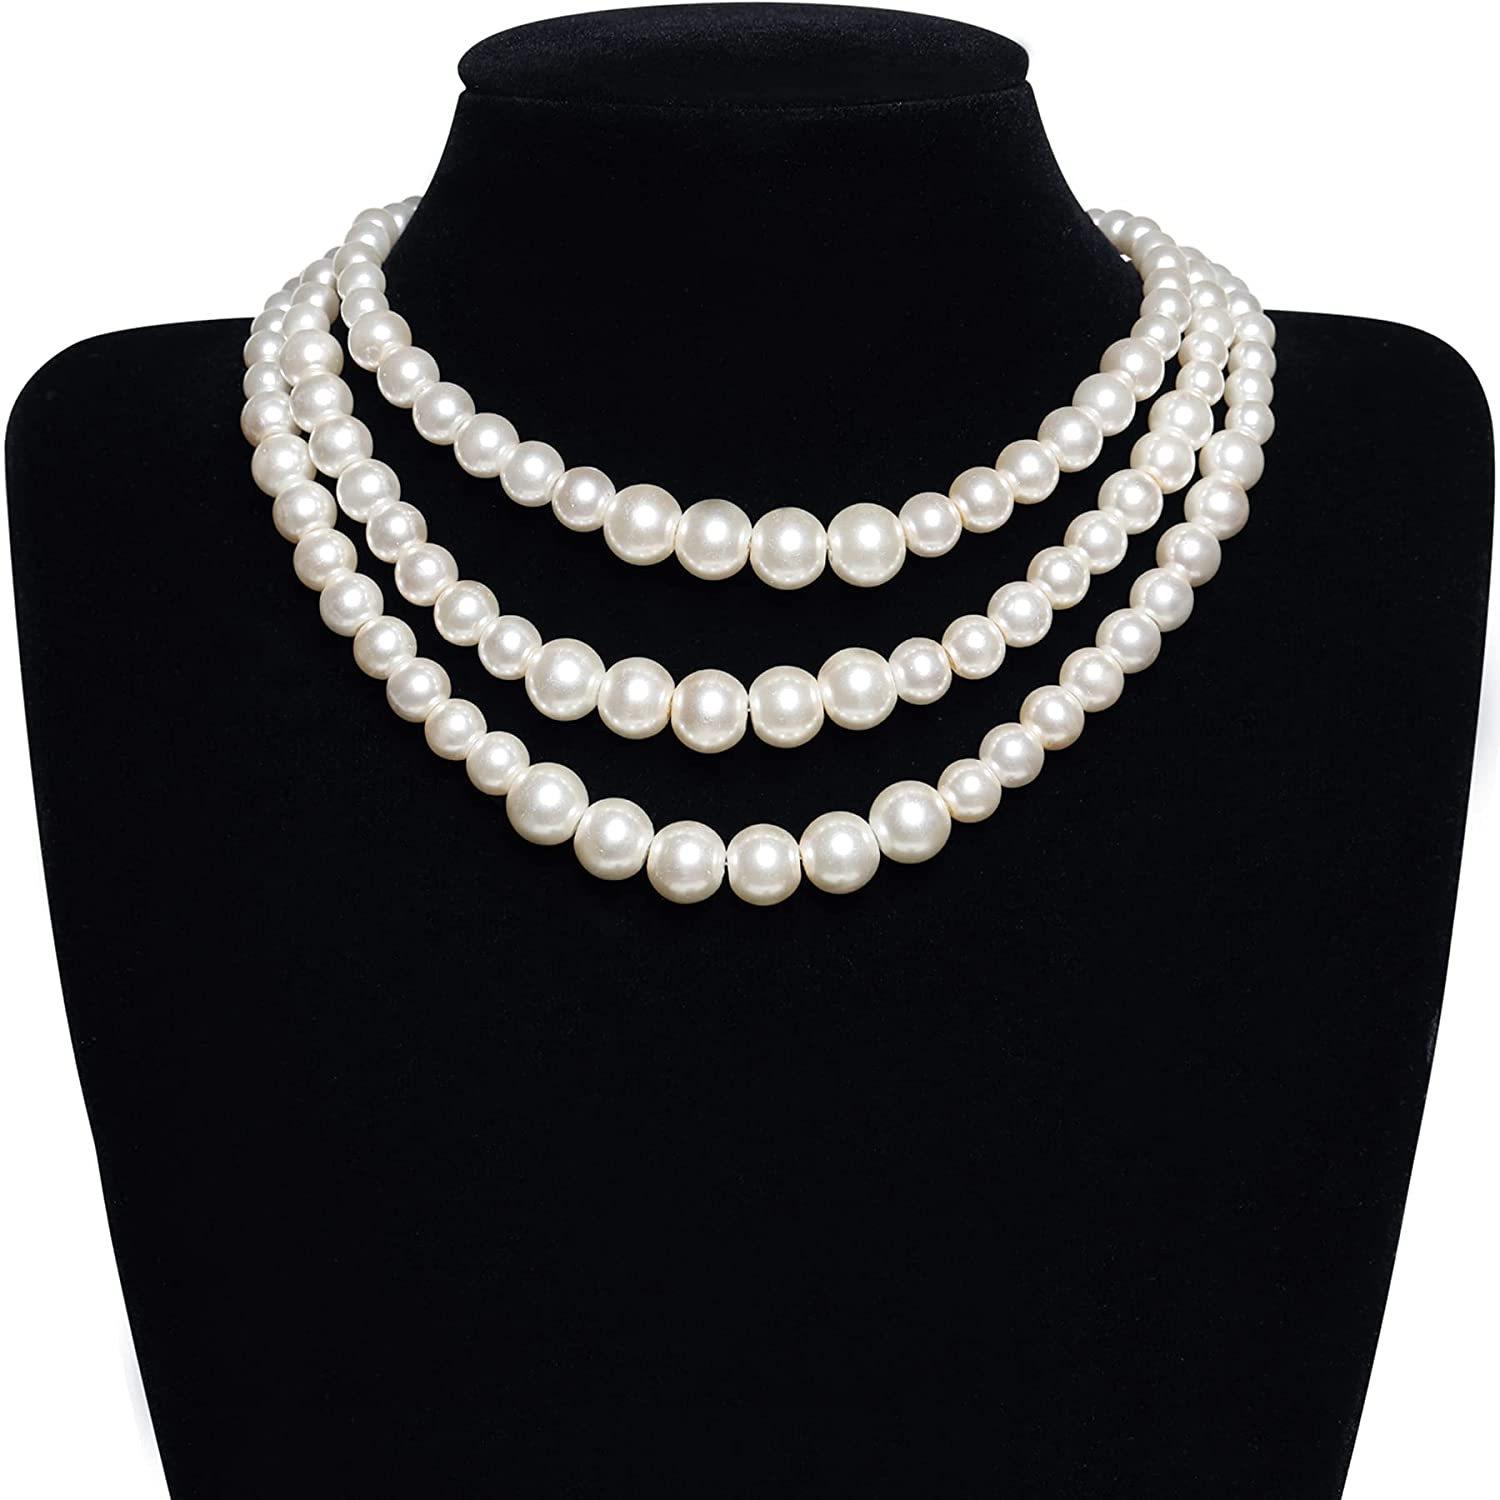 BABEYOND Round Imitation Pearl Necklace Vintage Multi Strands Necklace 20s Flapper Necklace for Party